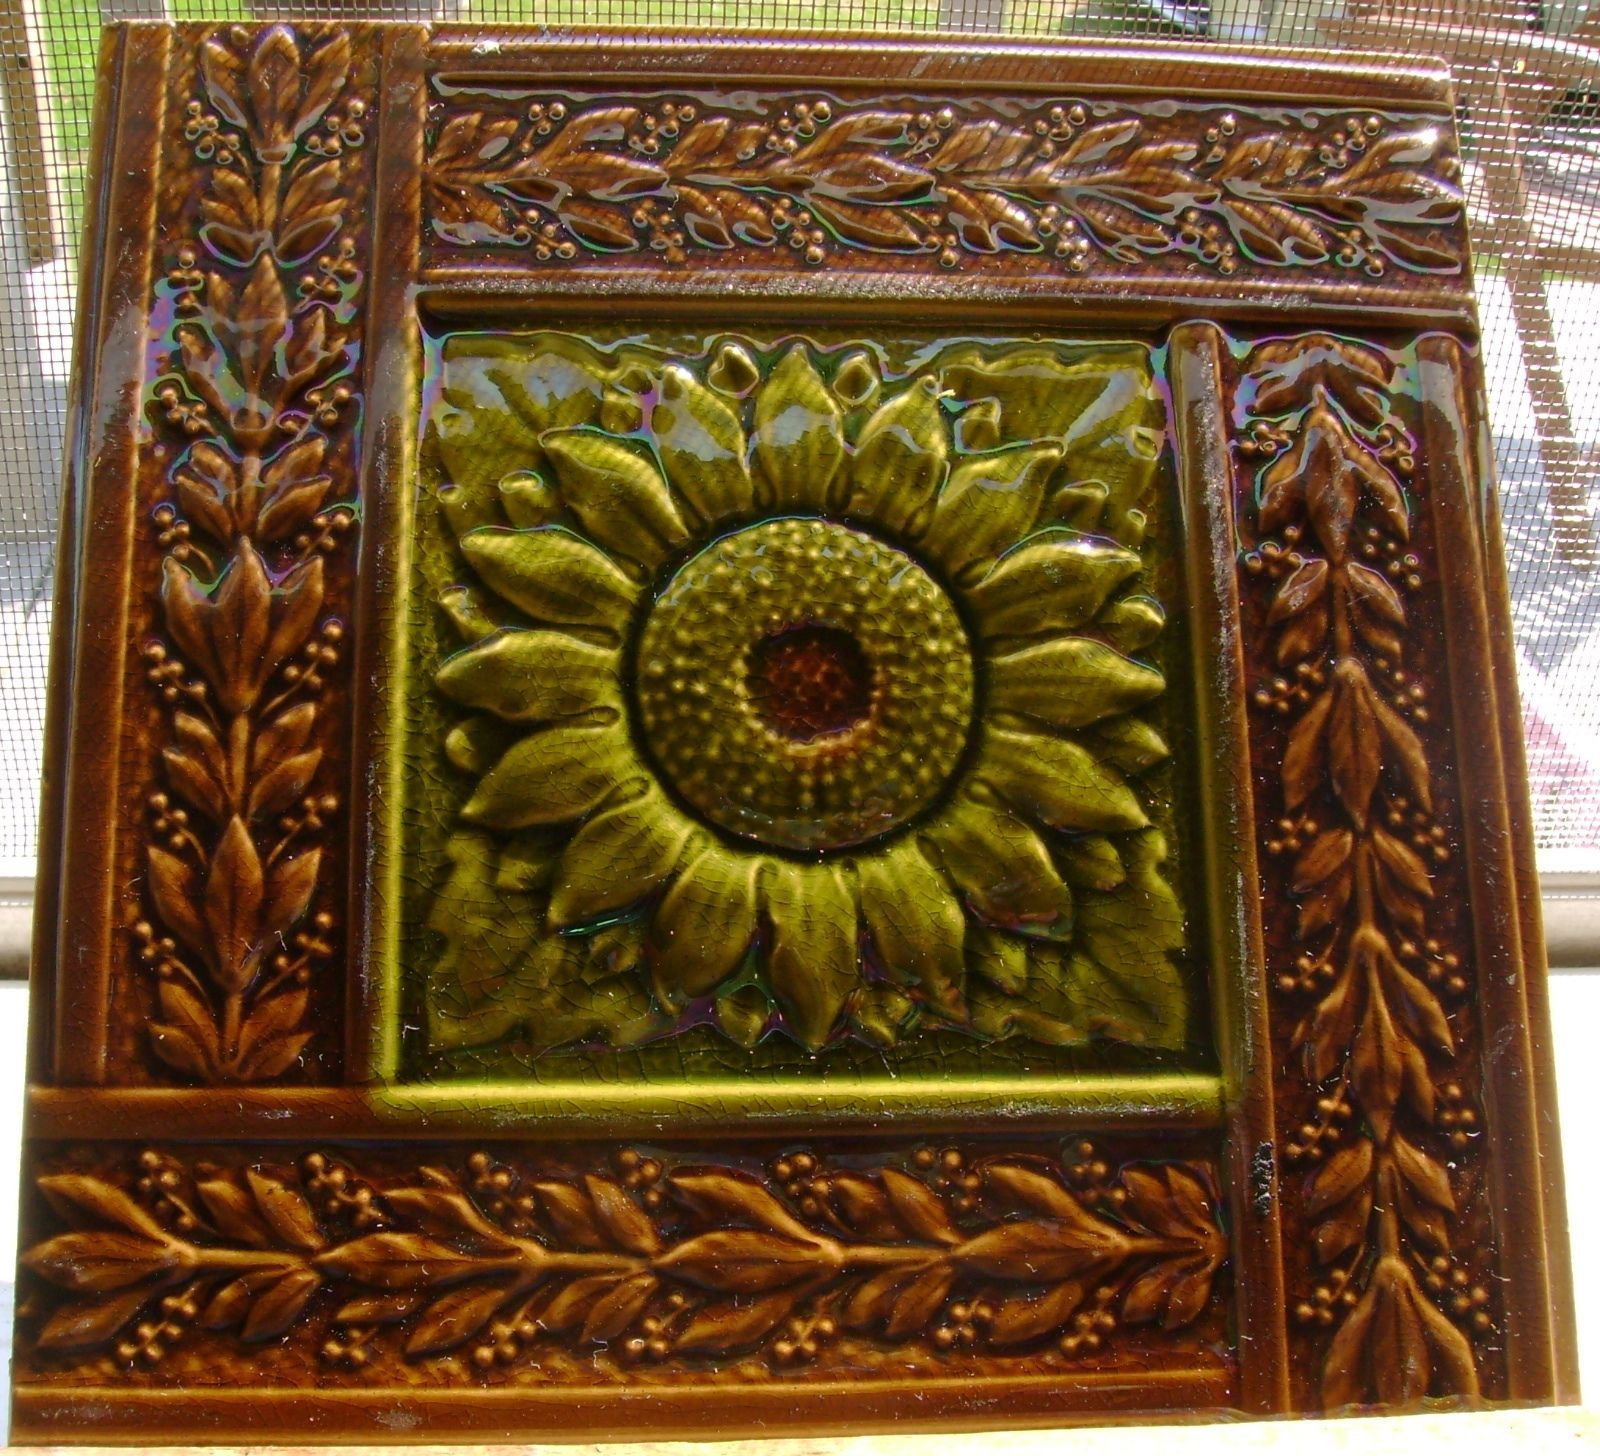 wall fireplaces vintage x fireplace products building materials tiles legacy floor grates img antique